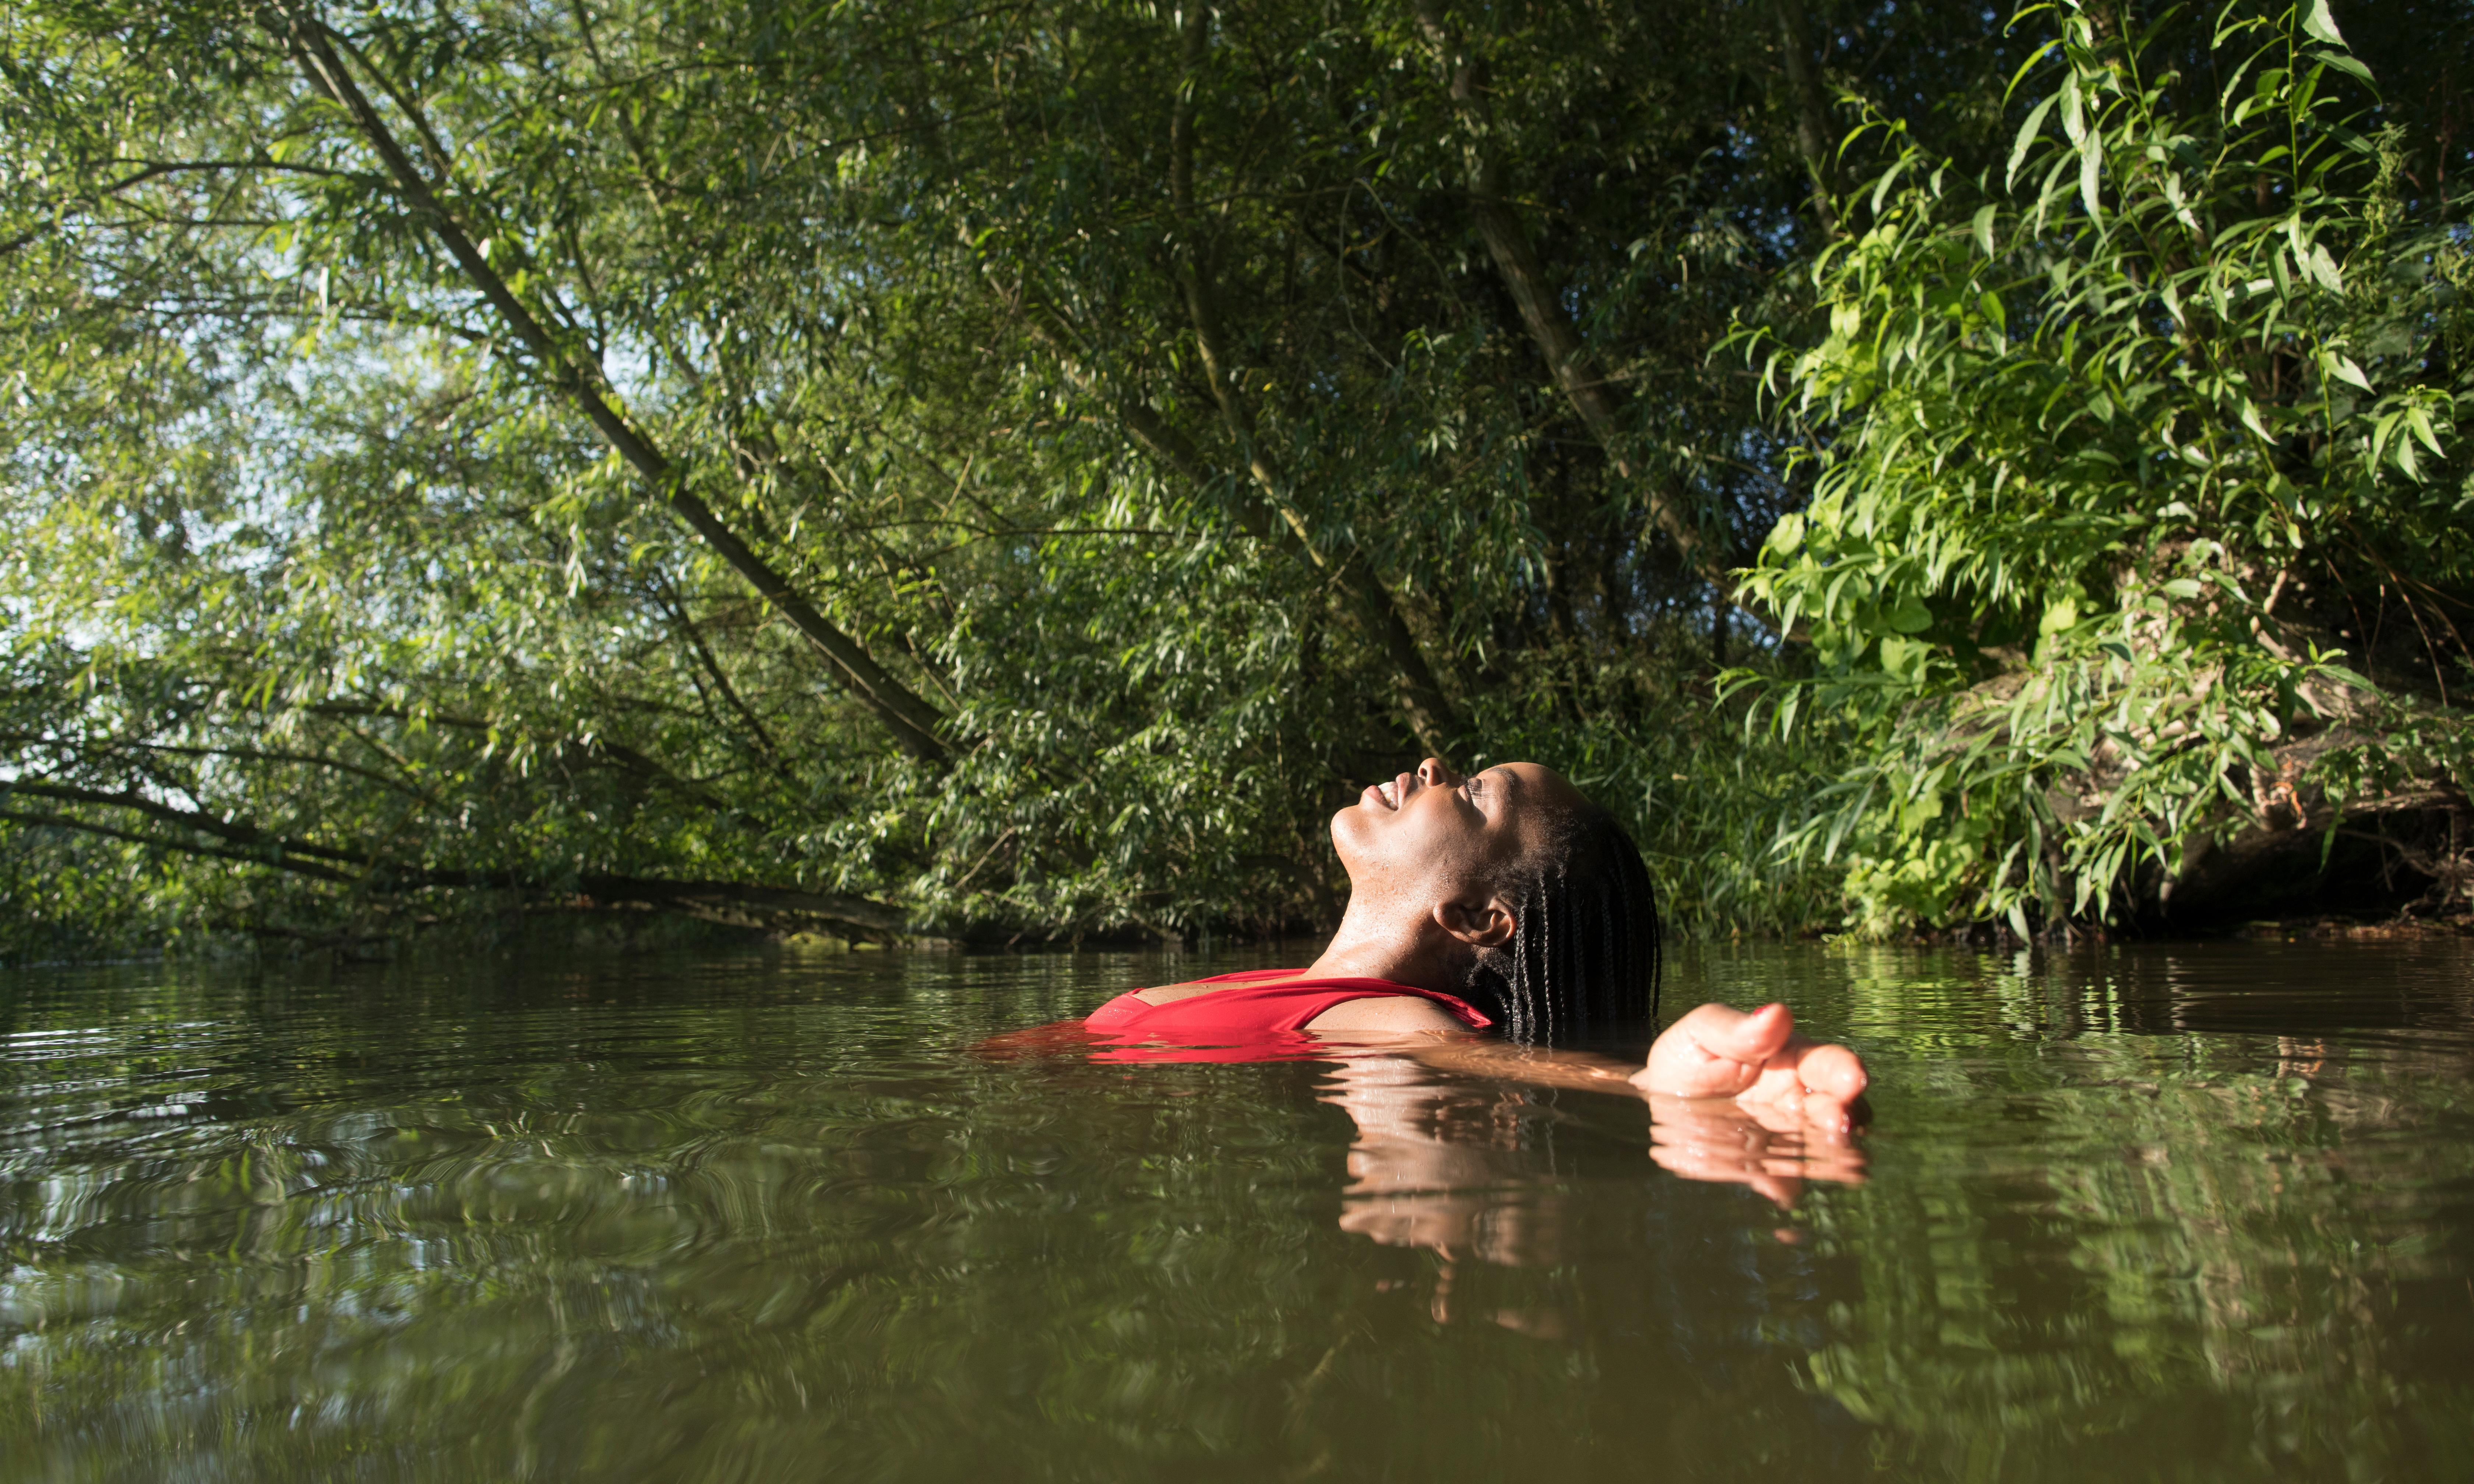 'I launch naked into the unknown': writers on the joy of wild swimming